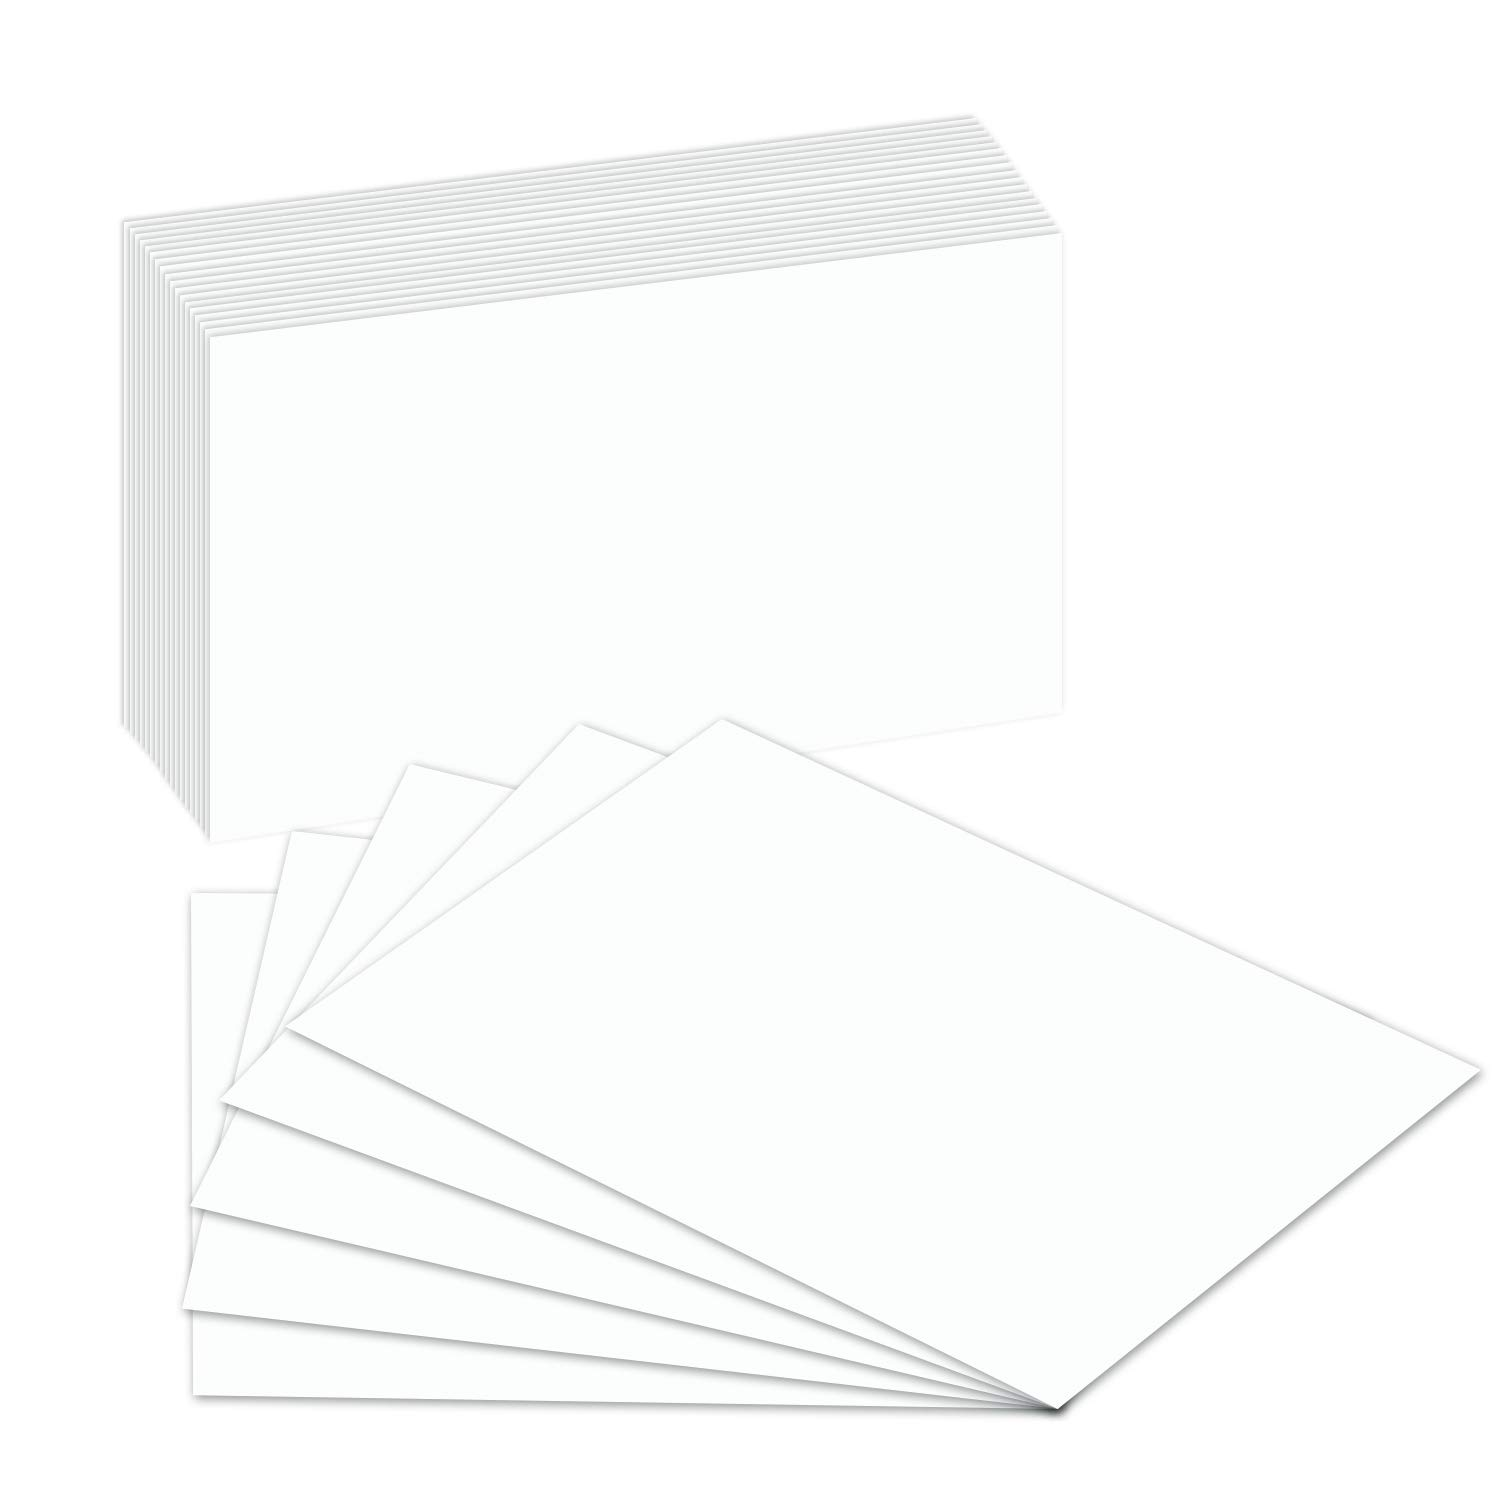 100 Extra Thick Index Cards | Blank Index Cards | 14pt (0.014'') 100lb | Heavyweight Thick White Cover Stock | 100 Cards Per Pack - 4 x 6 Inches by S Superfine Printing